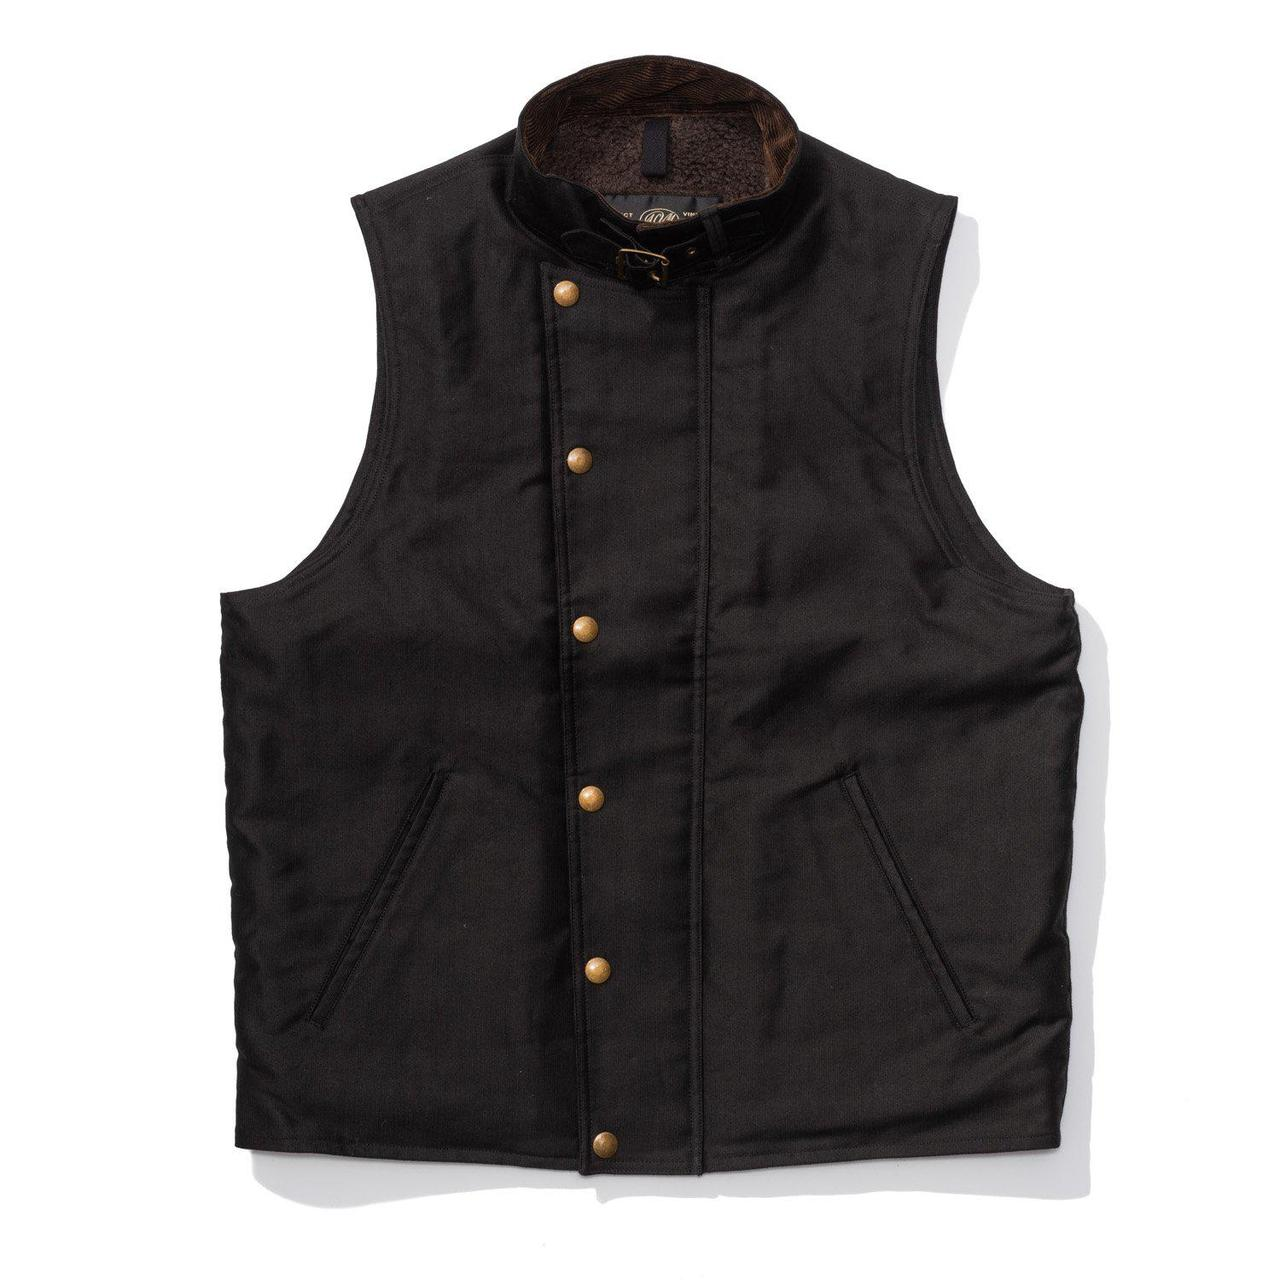 addict-acv-v01-18a-ulster-vest-black-alpaca-motorcycle-clutch-cafe-london